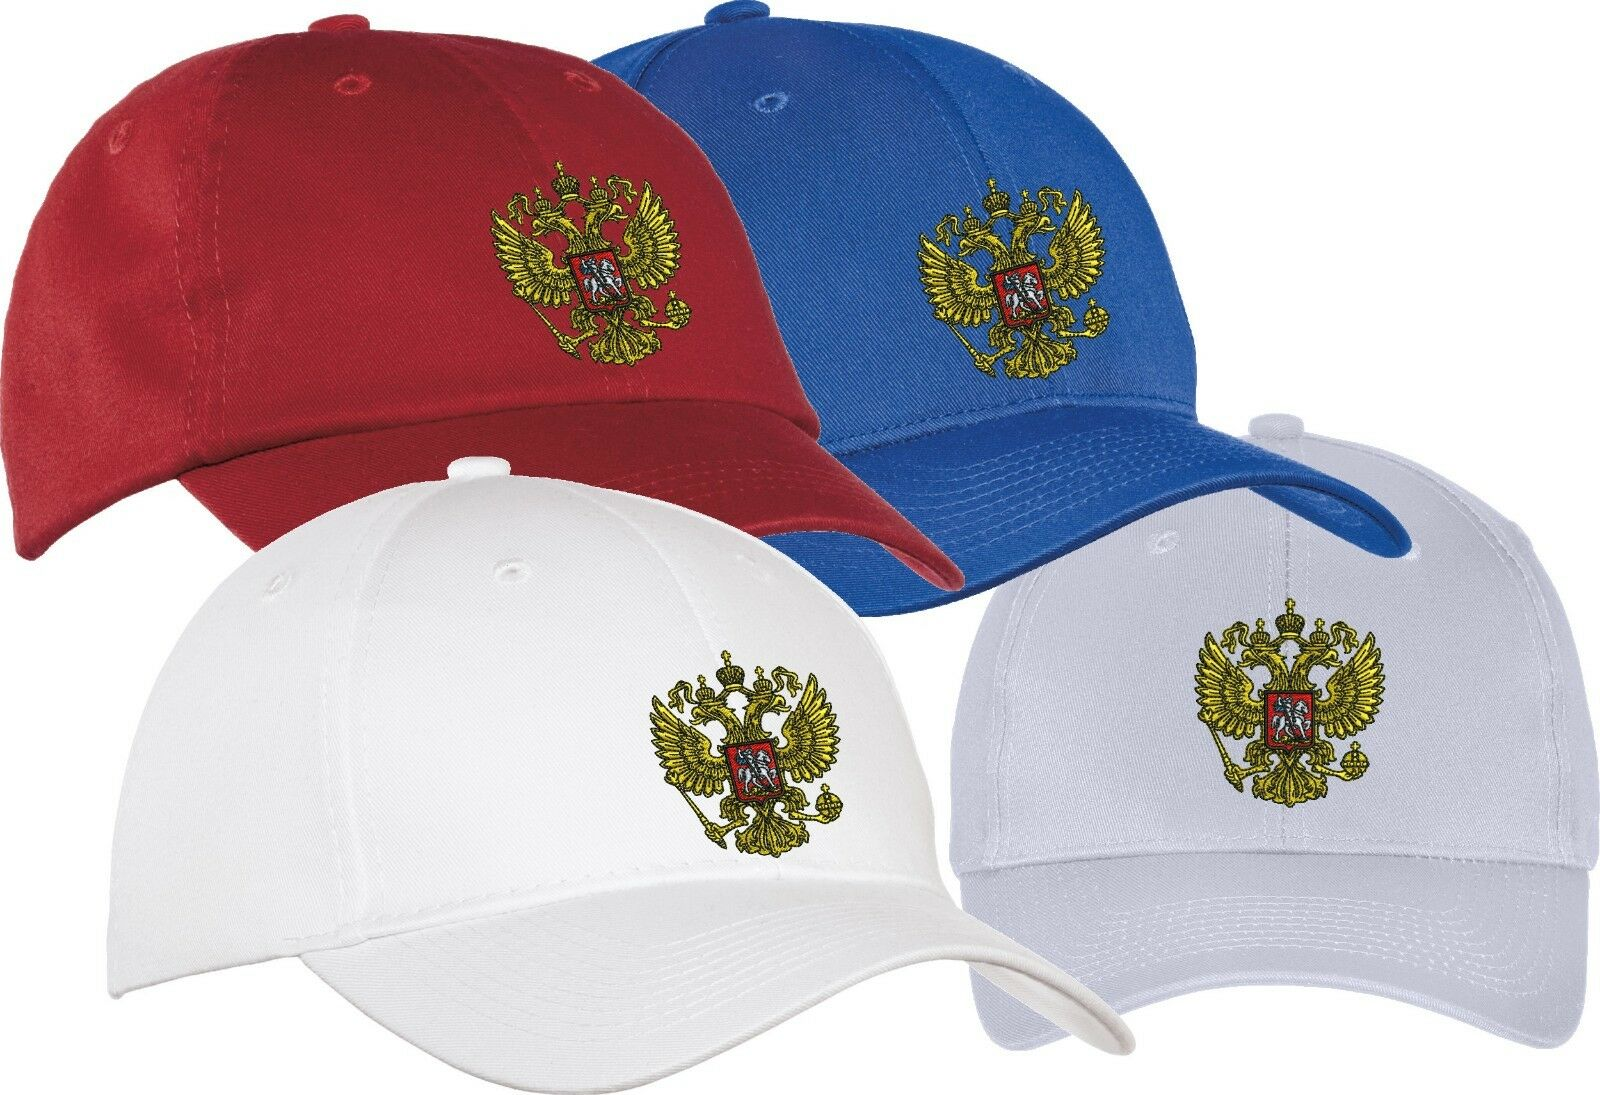 f27779a9792 Russia FIFA WC World Cup 2018 Soccer Hat Cap CLOSEOUT 50% OFF LIST 1 of  7FREE Shipping ...